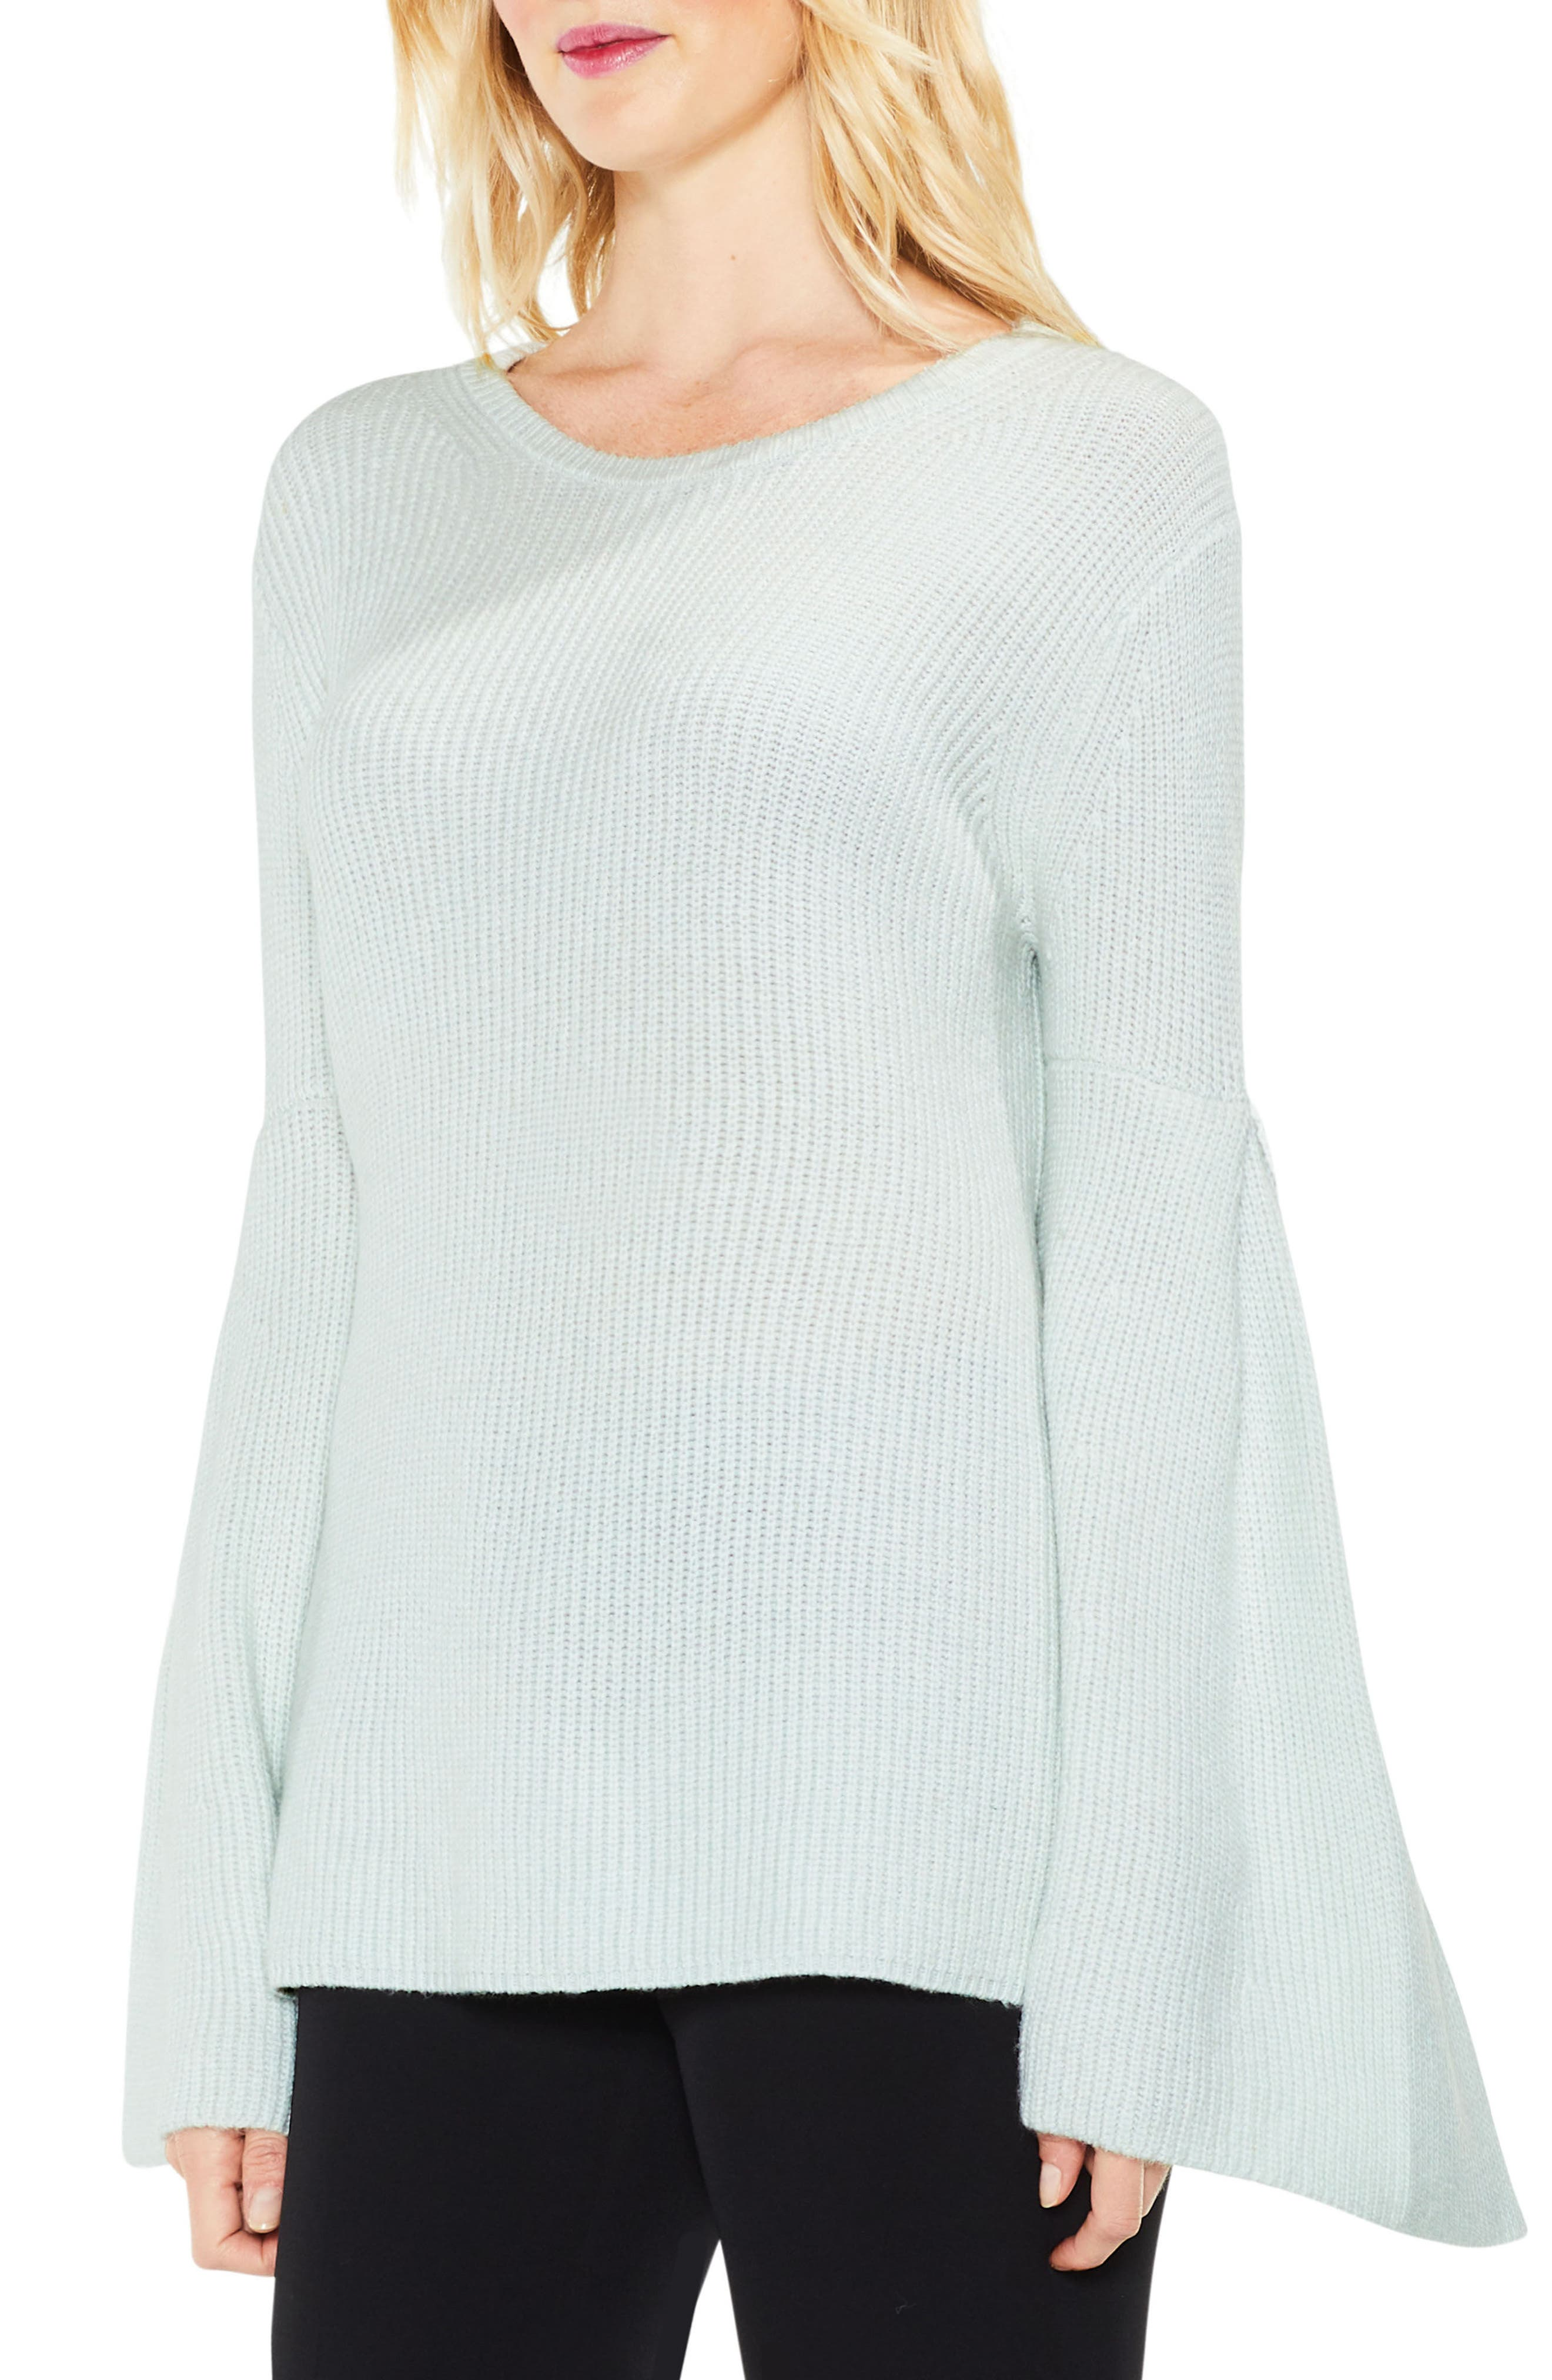 Vince Camuto All Over Rib Bell Sleeve Sweater (Regular & Petite)